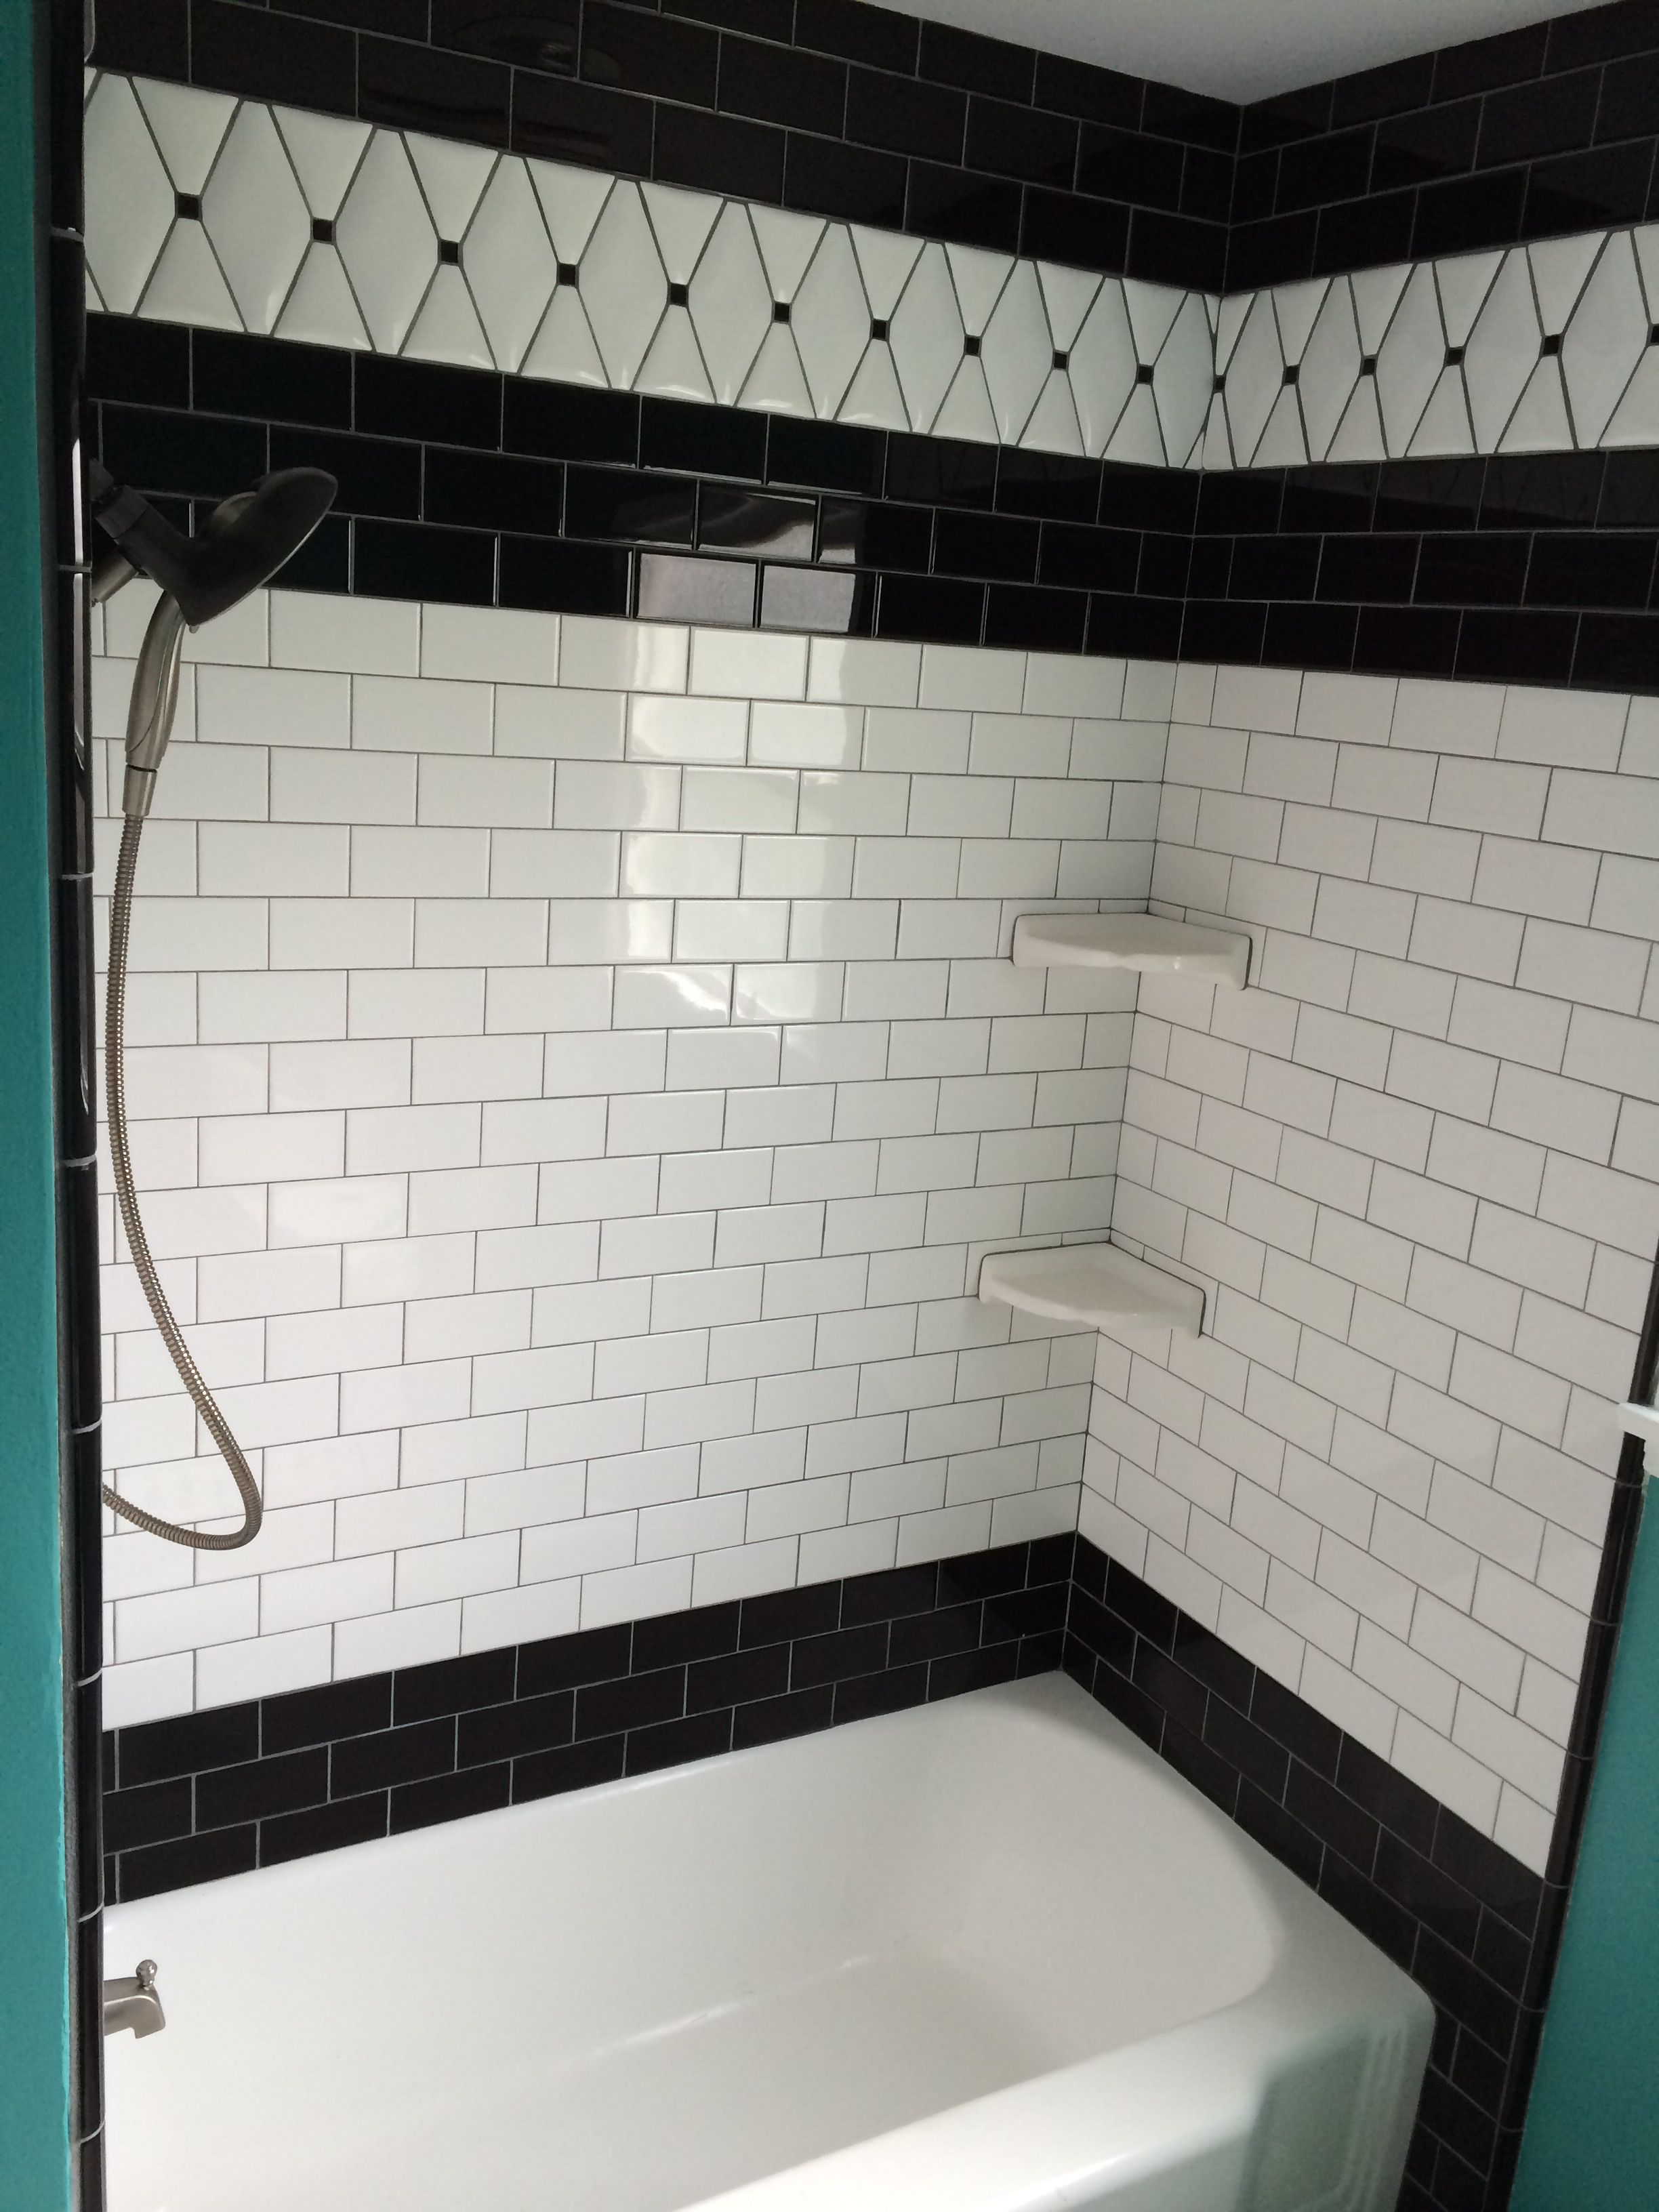 Black And White Subway Tile Black Bullnose Trim And White Pillow Tile From Tile Expo In Anaheim Grout White Subway Tile Shower White Subway Tile Subway Tile